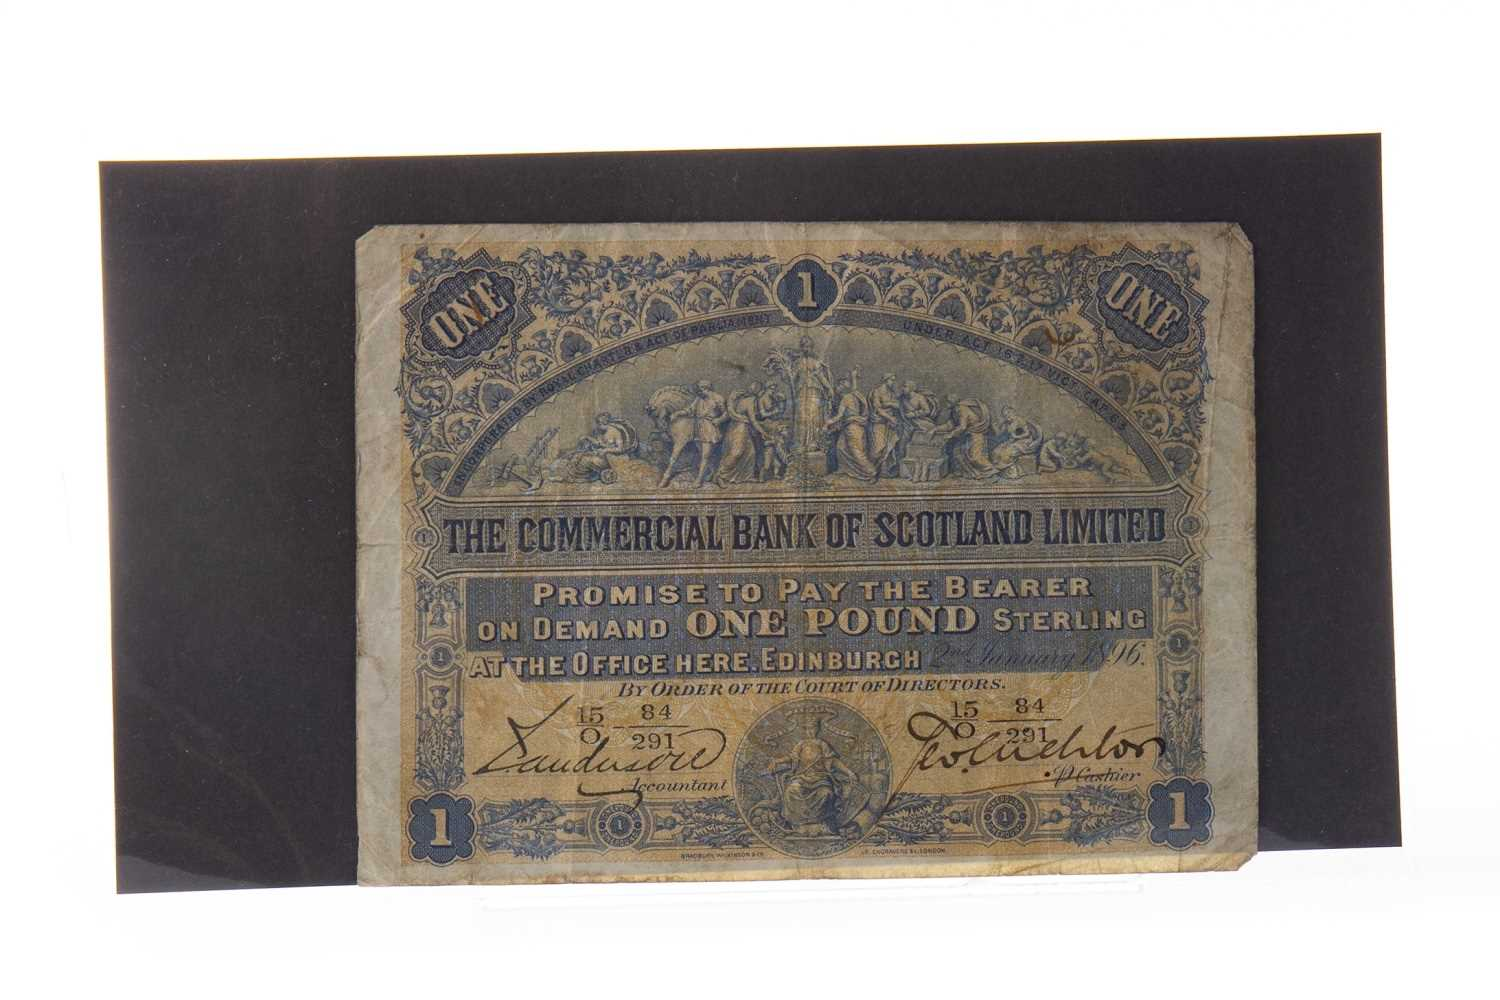 Lot 563-A THE COMMERCIAL BANK OF SCOTLAND £1 POUND NOTE, 1896